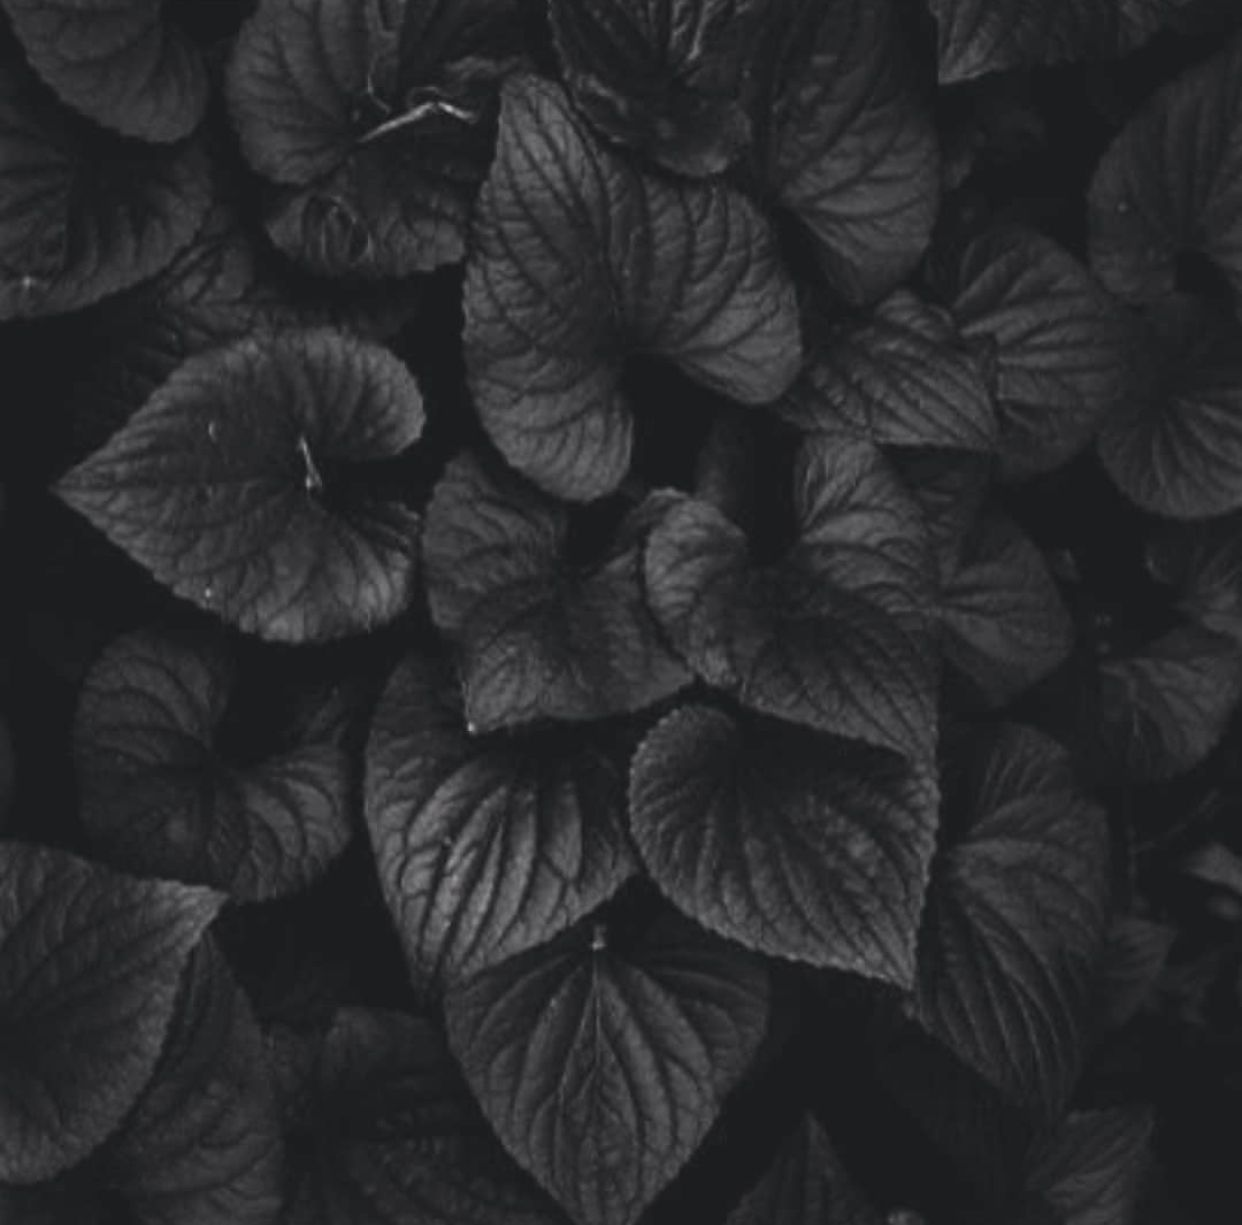 Kpop Themes Black Aesthetic Black And White Aesthetic Black Flowers Aesthetic dark leaf wallpaper